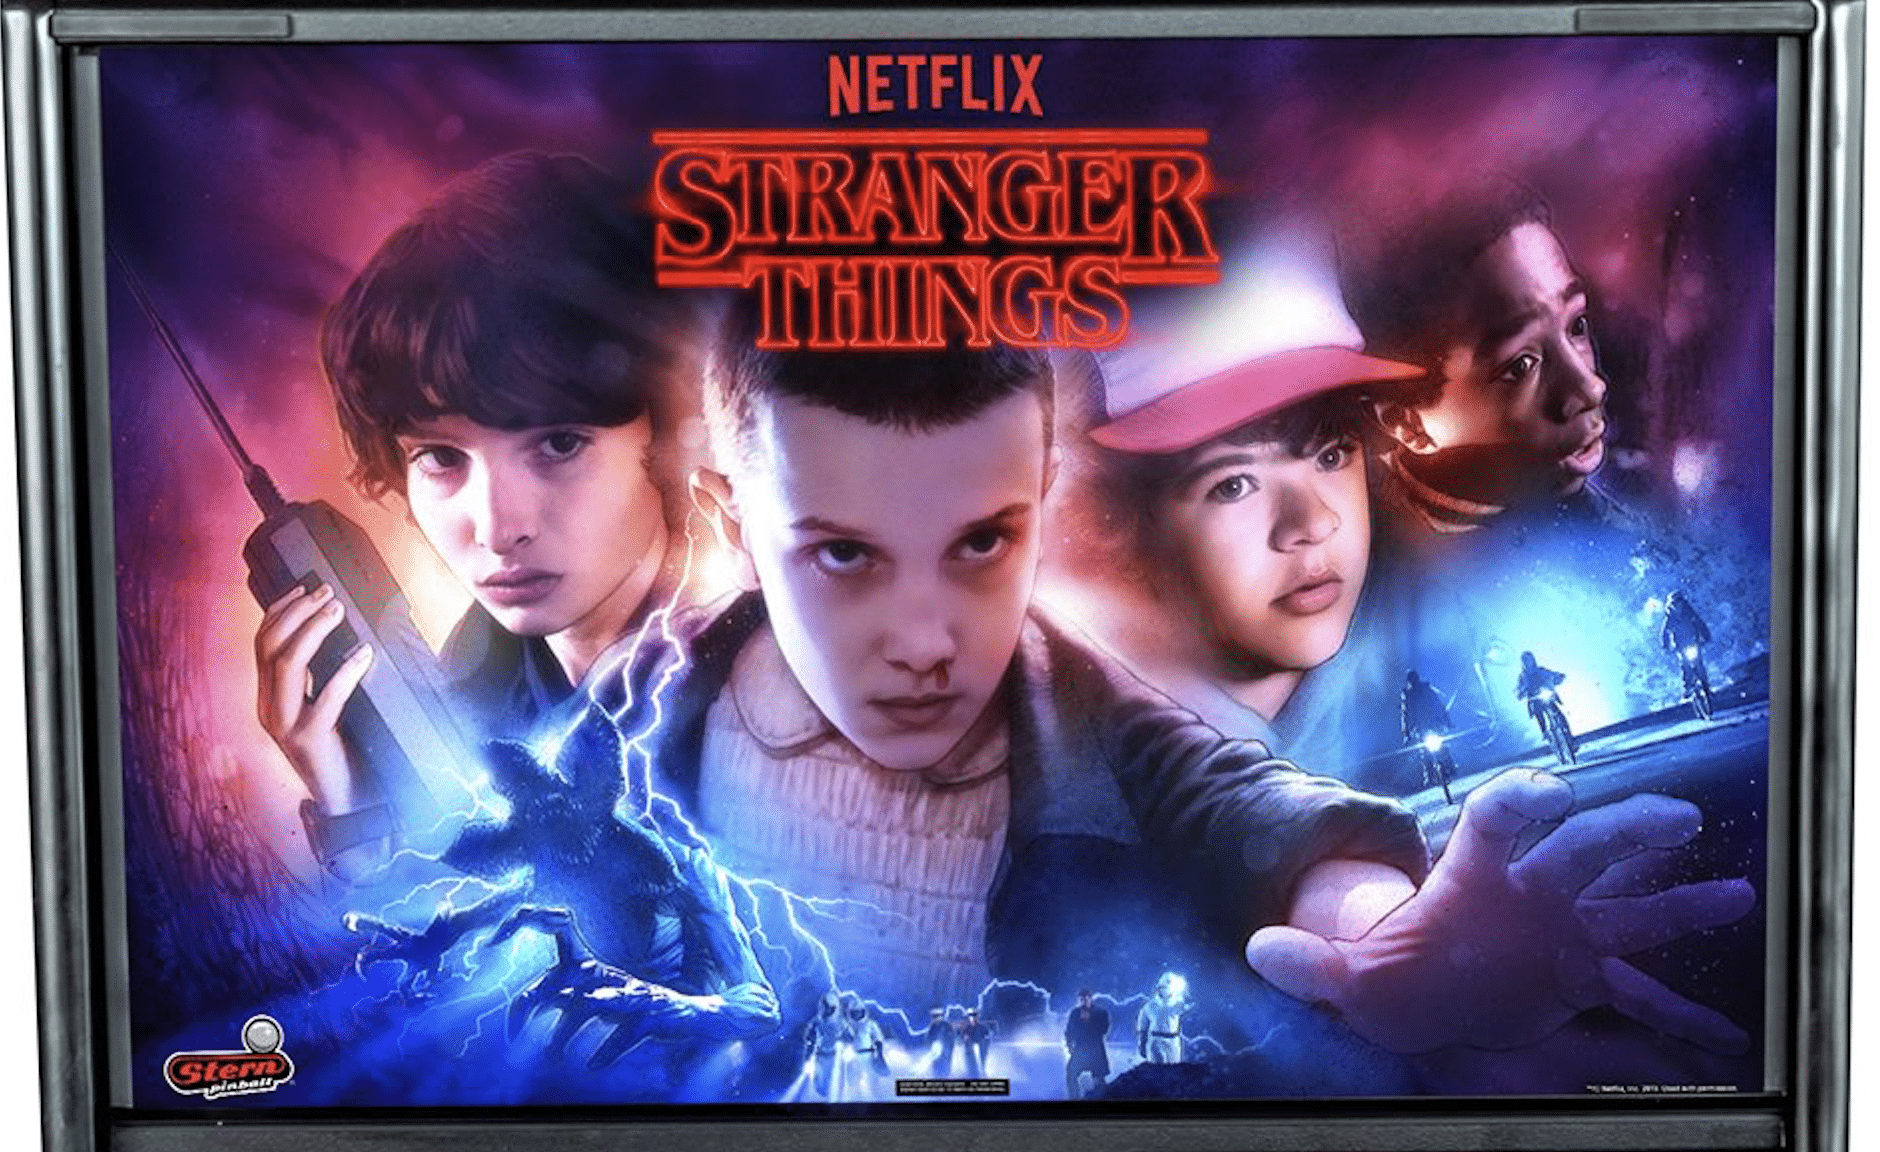 Stern Stranger Things